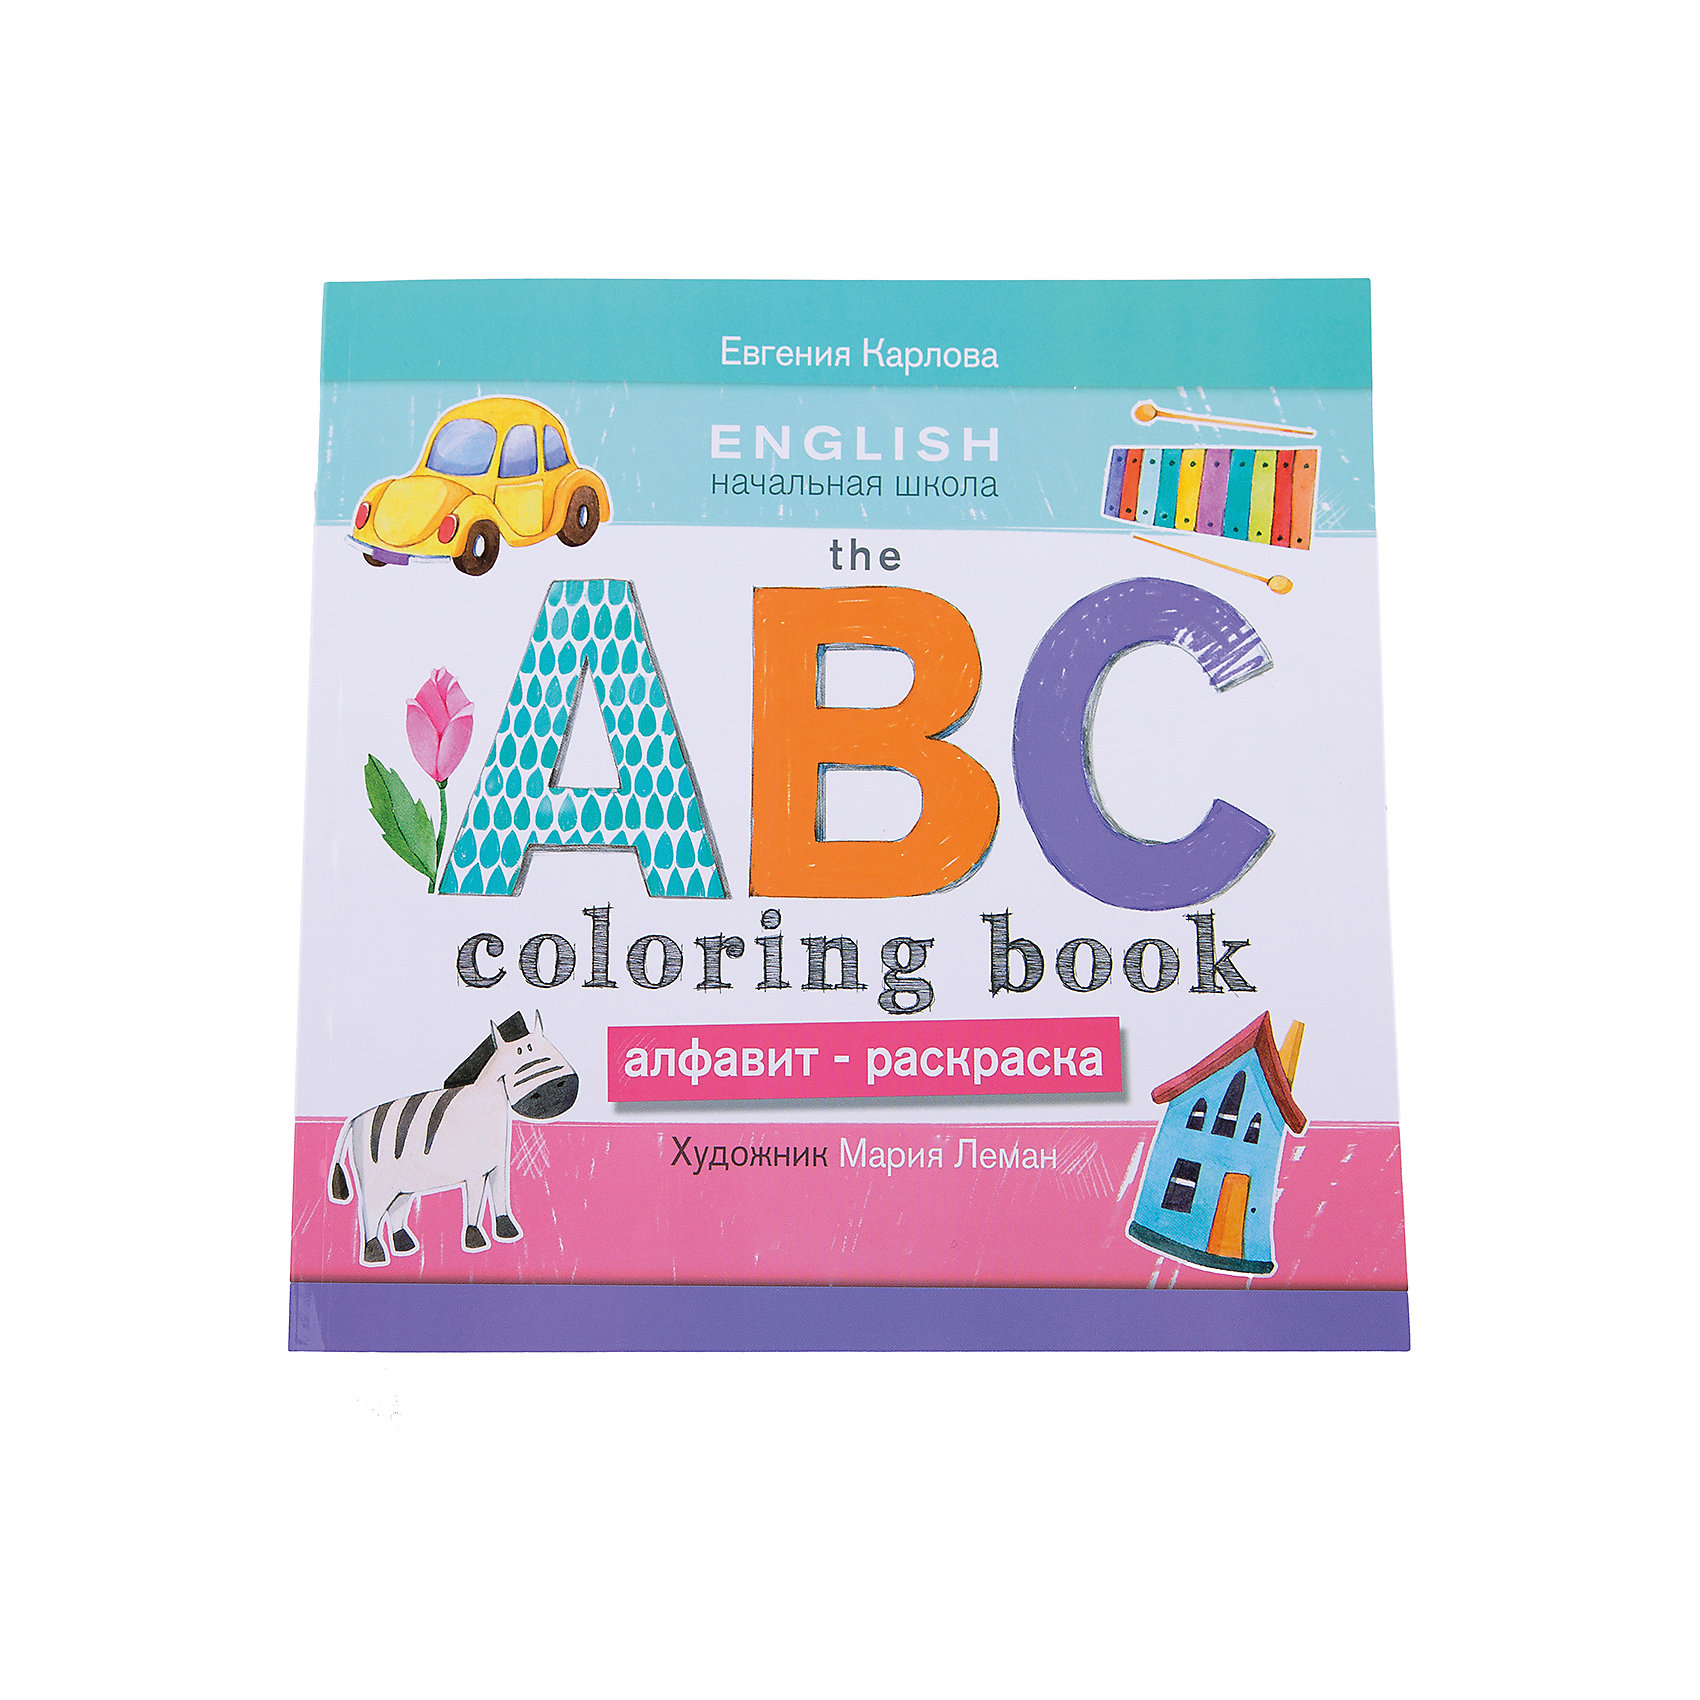 THE ABC COLORING BOOK (Алфавит-раскраска)